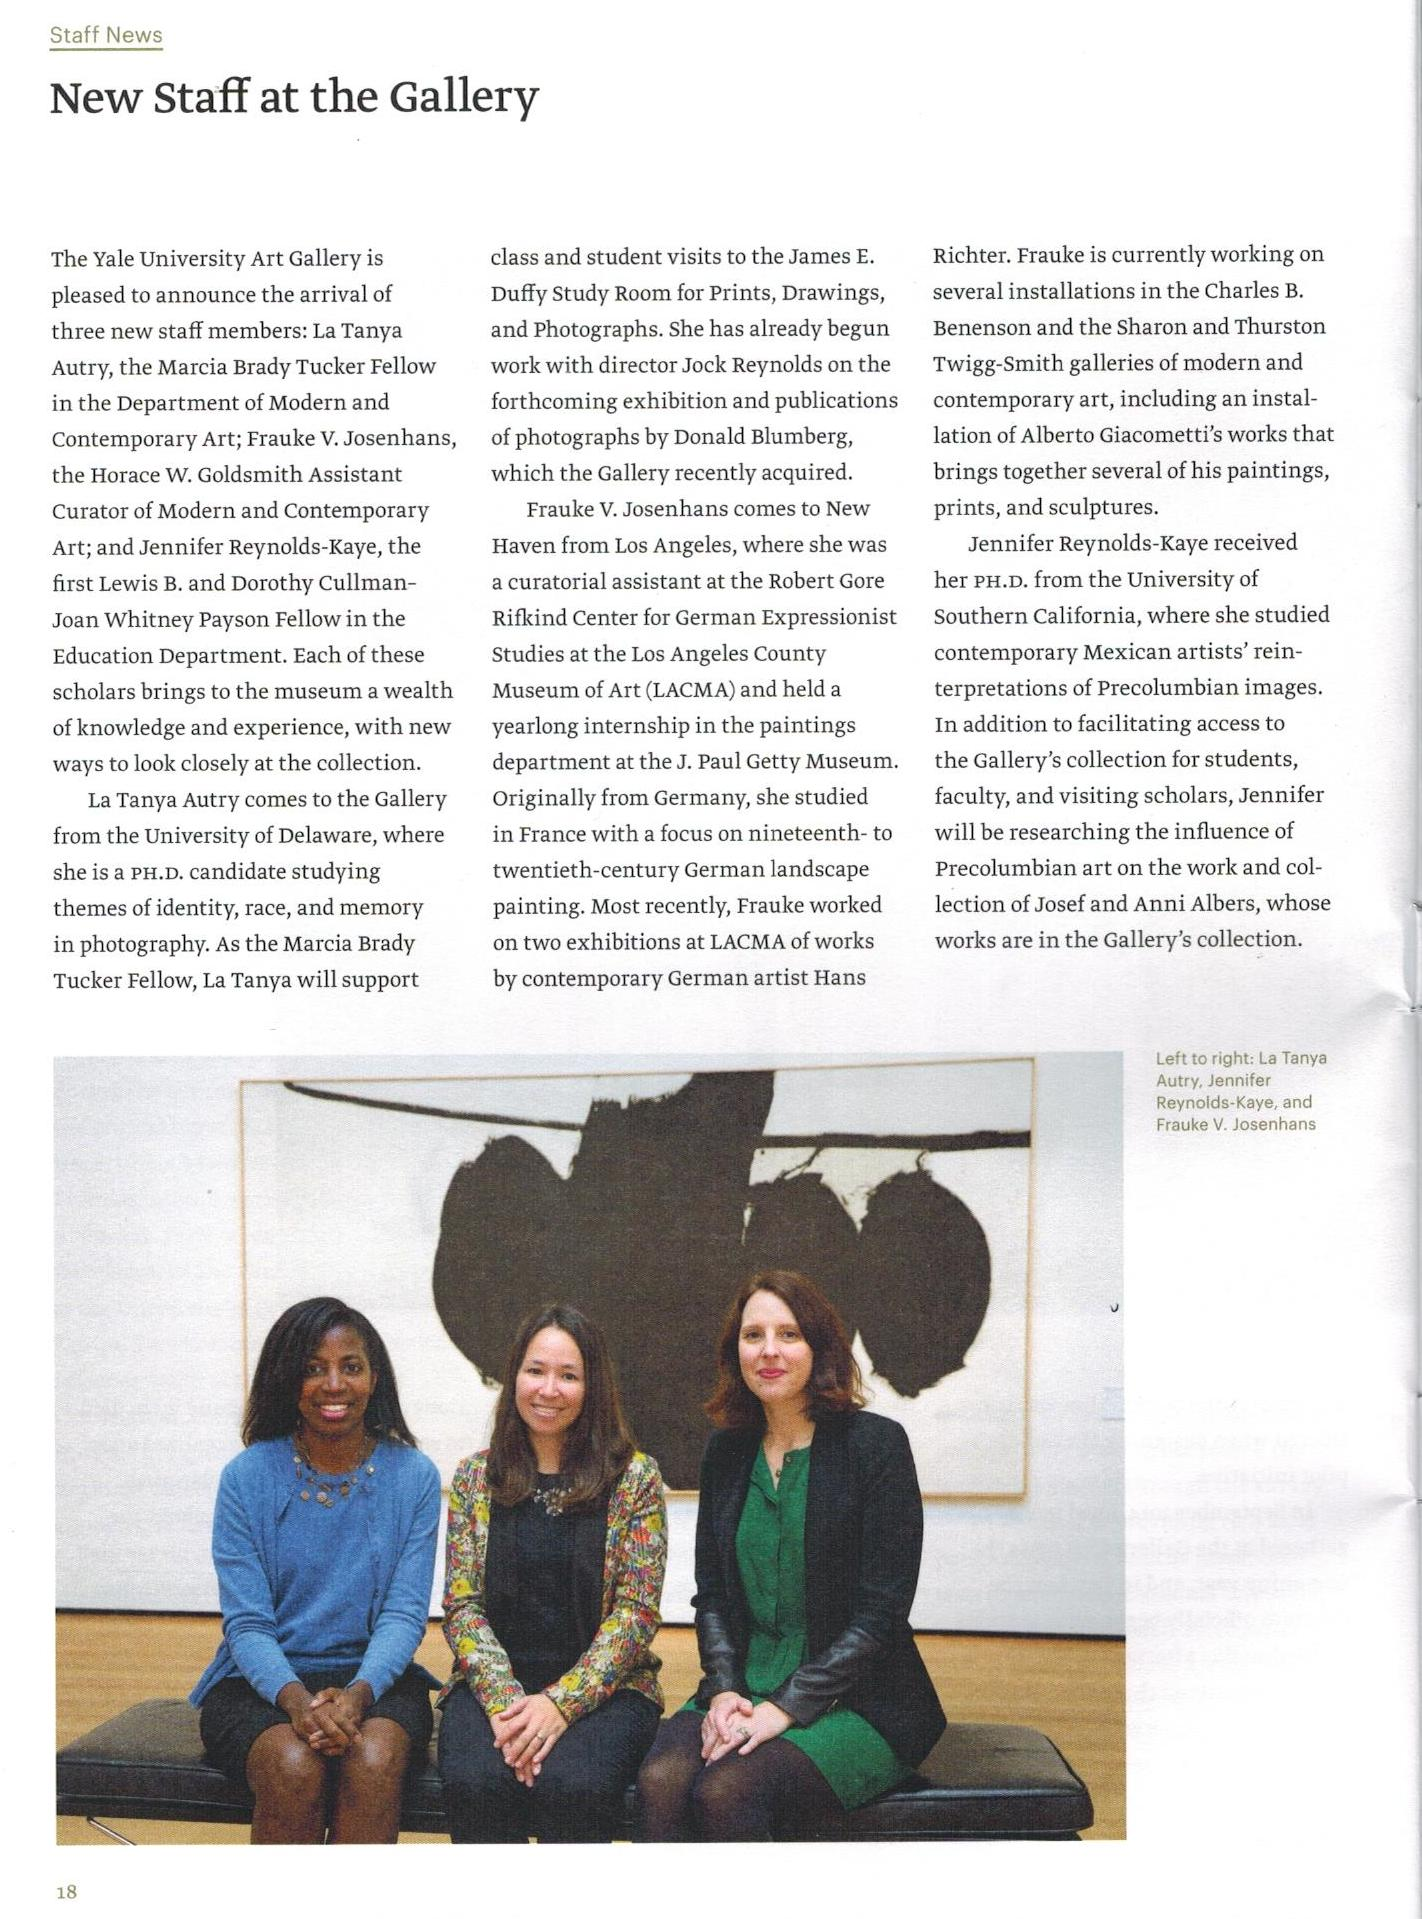 Jennifer Reynolds-Kaye in the YUAG Members' Magazine